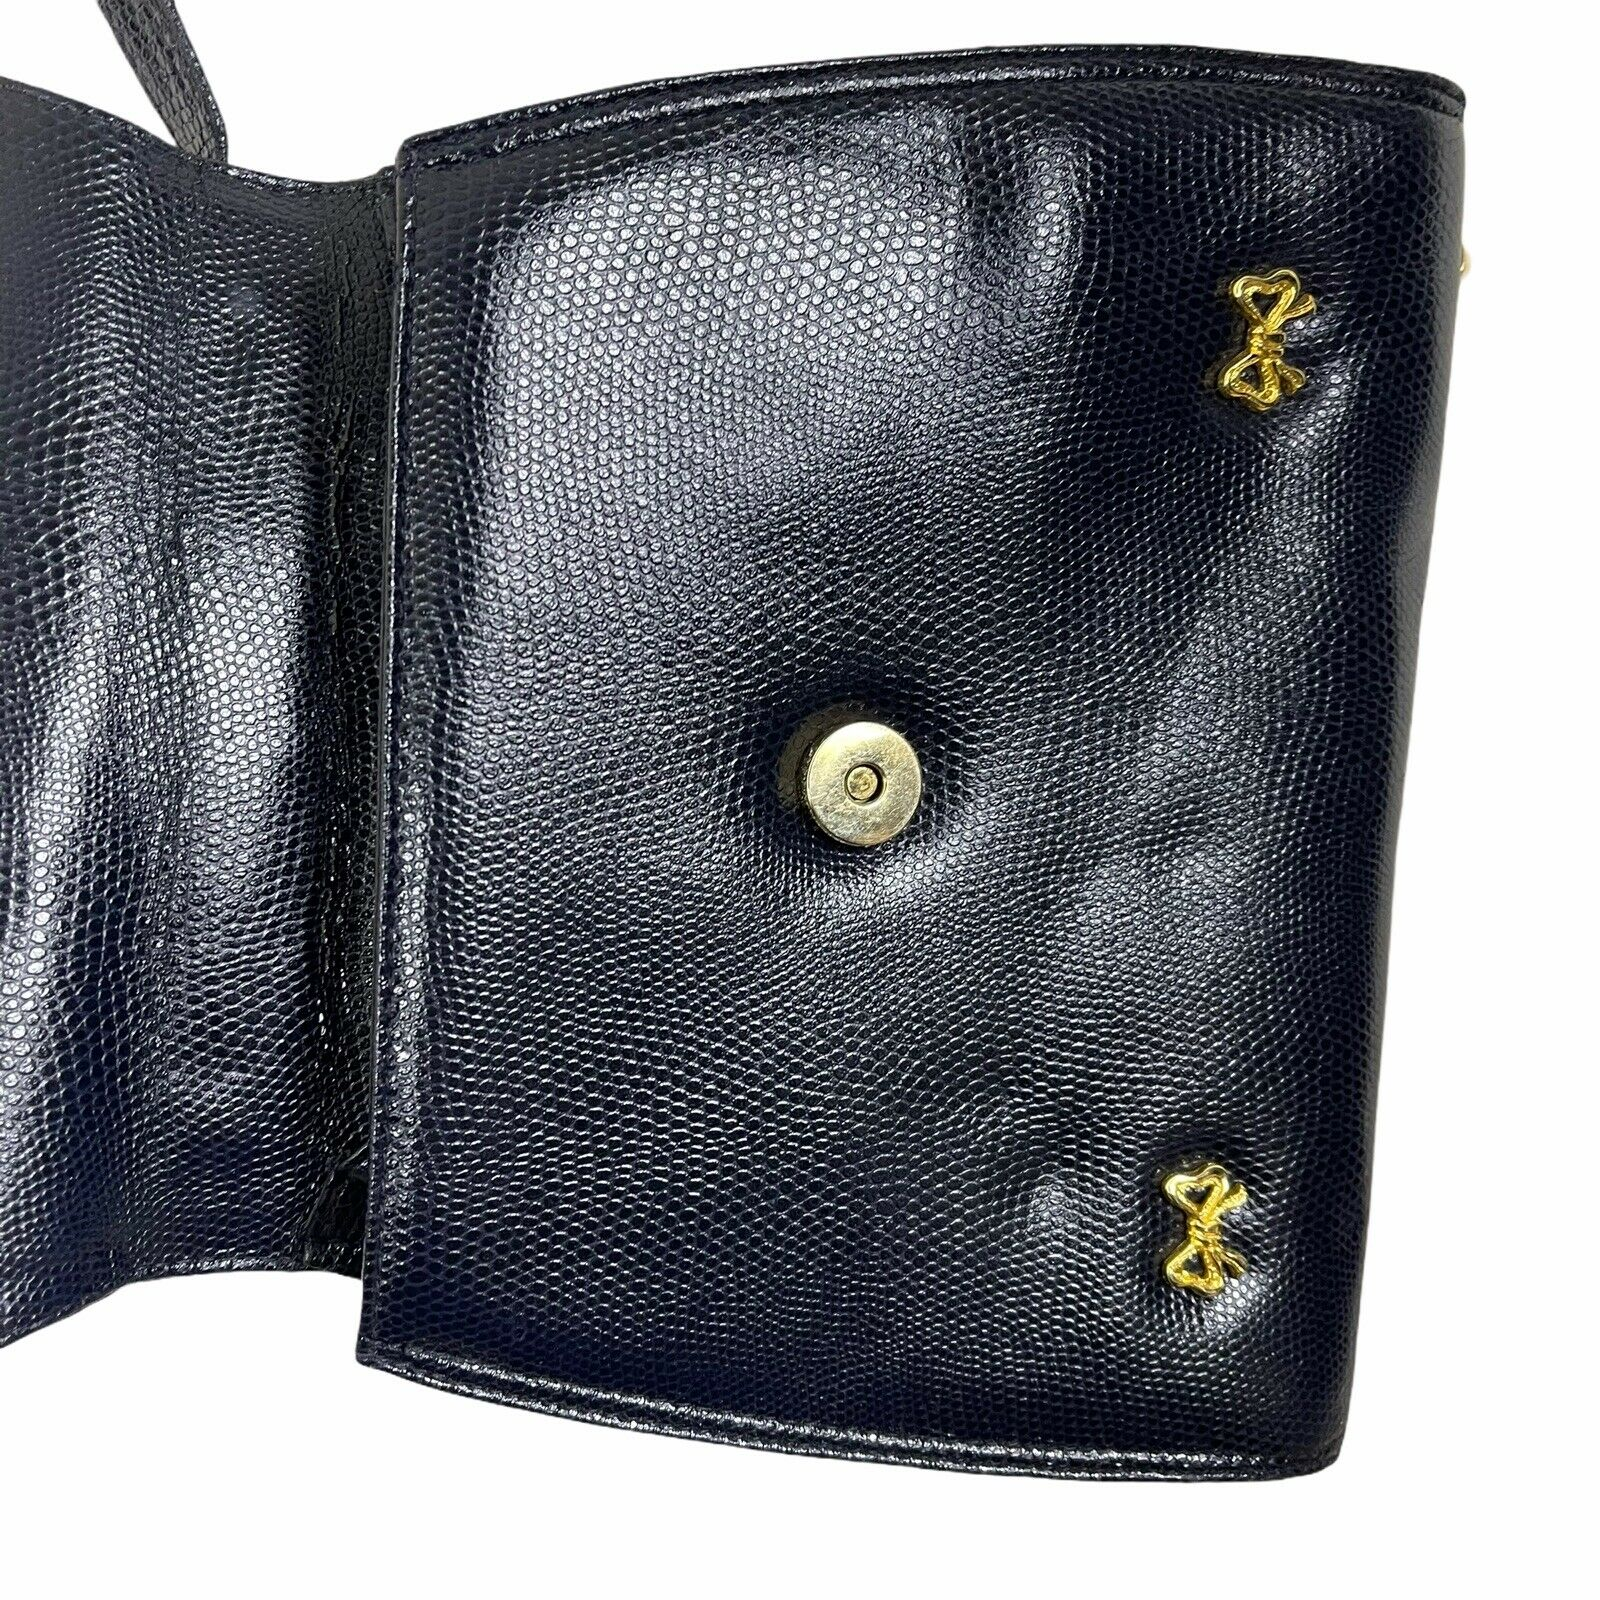 ARNOLD SCAASI NAVY LIZARD LEATHER WITH BOWS WOMEN… - image 4